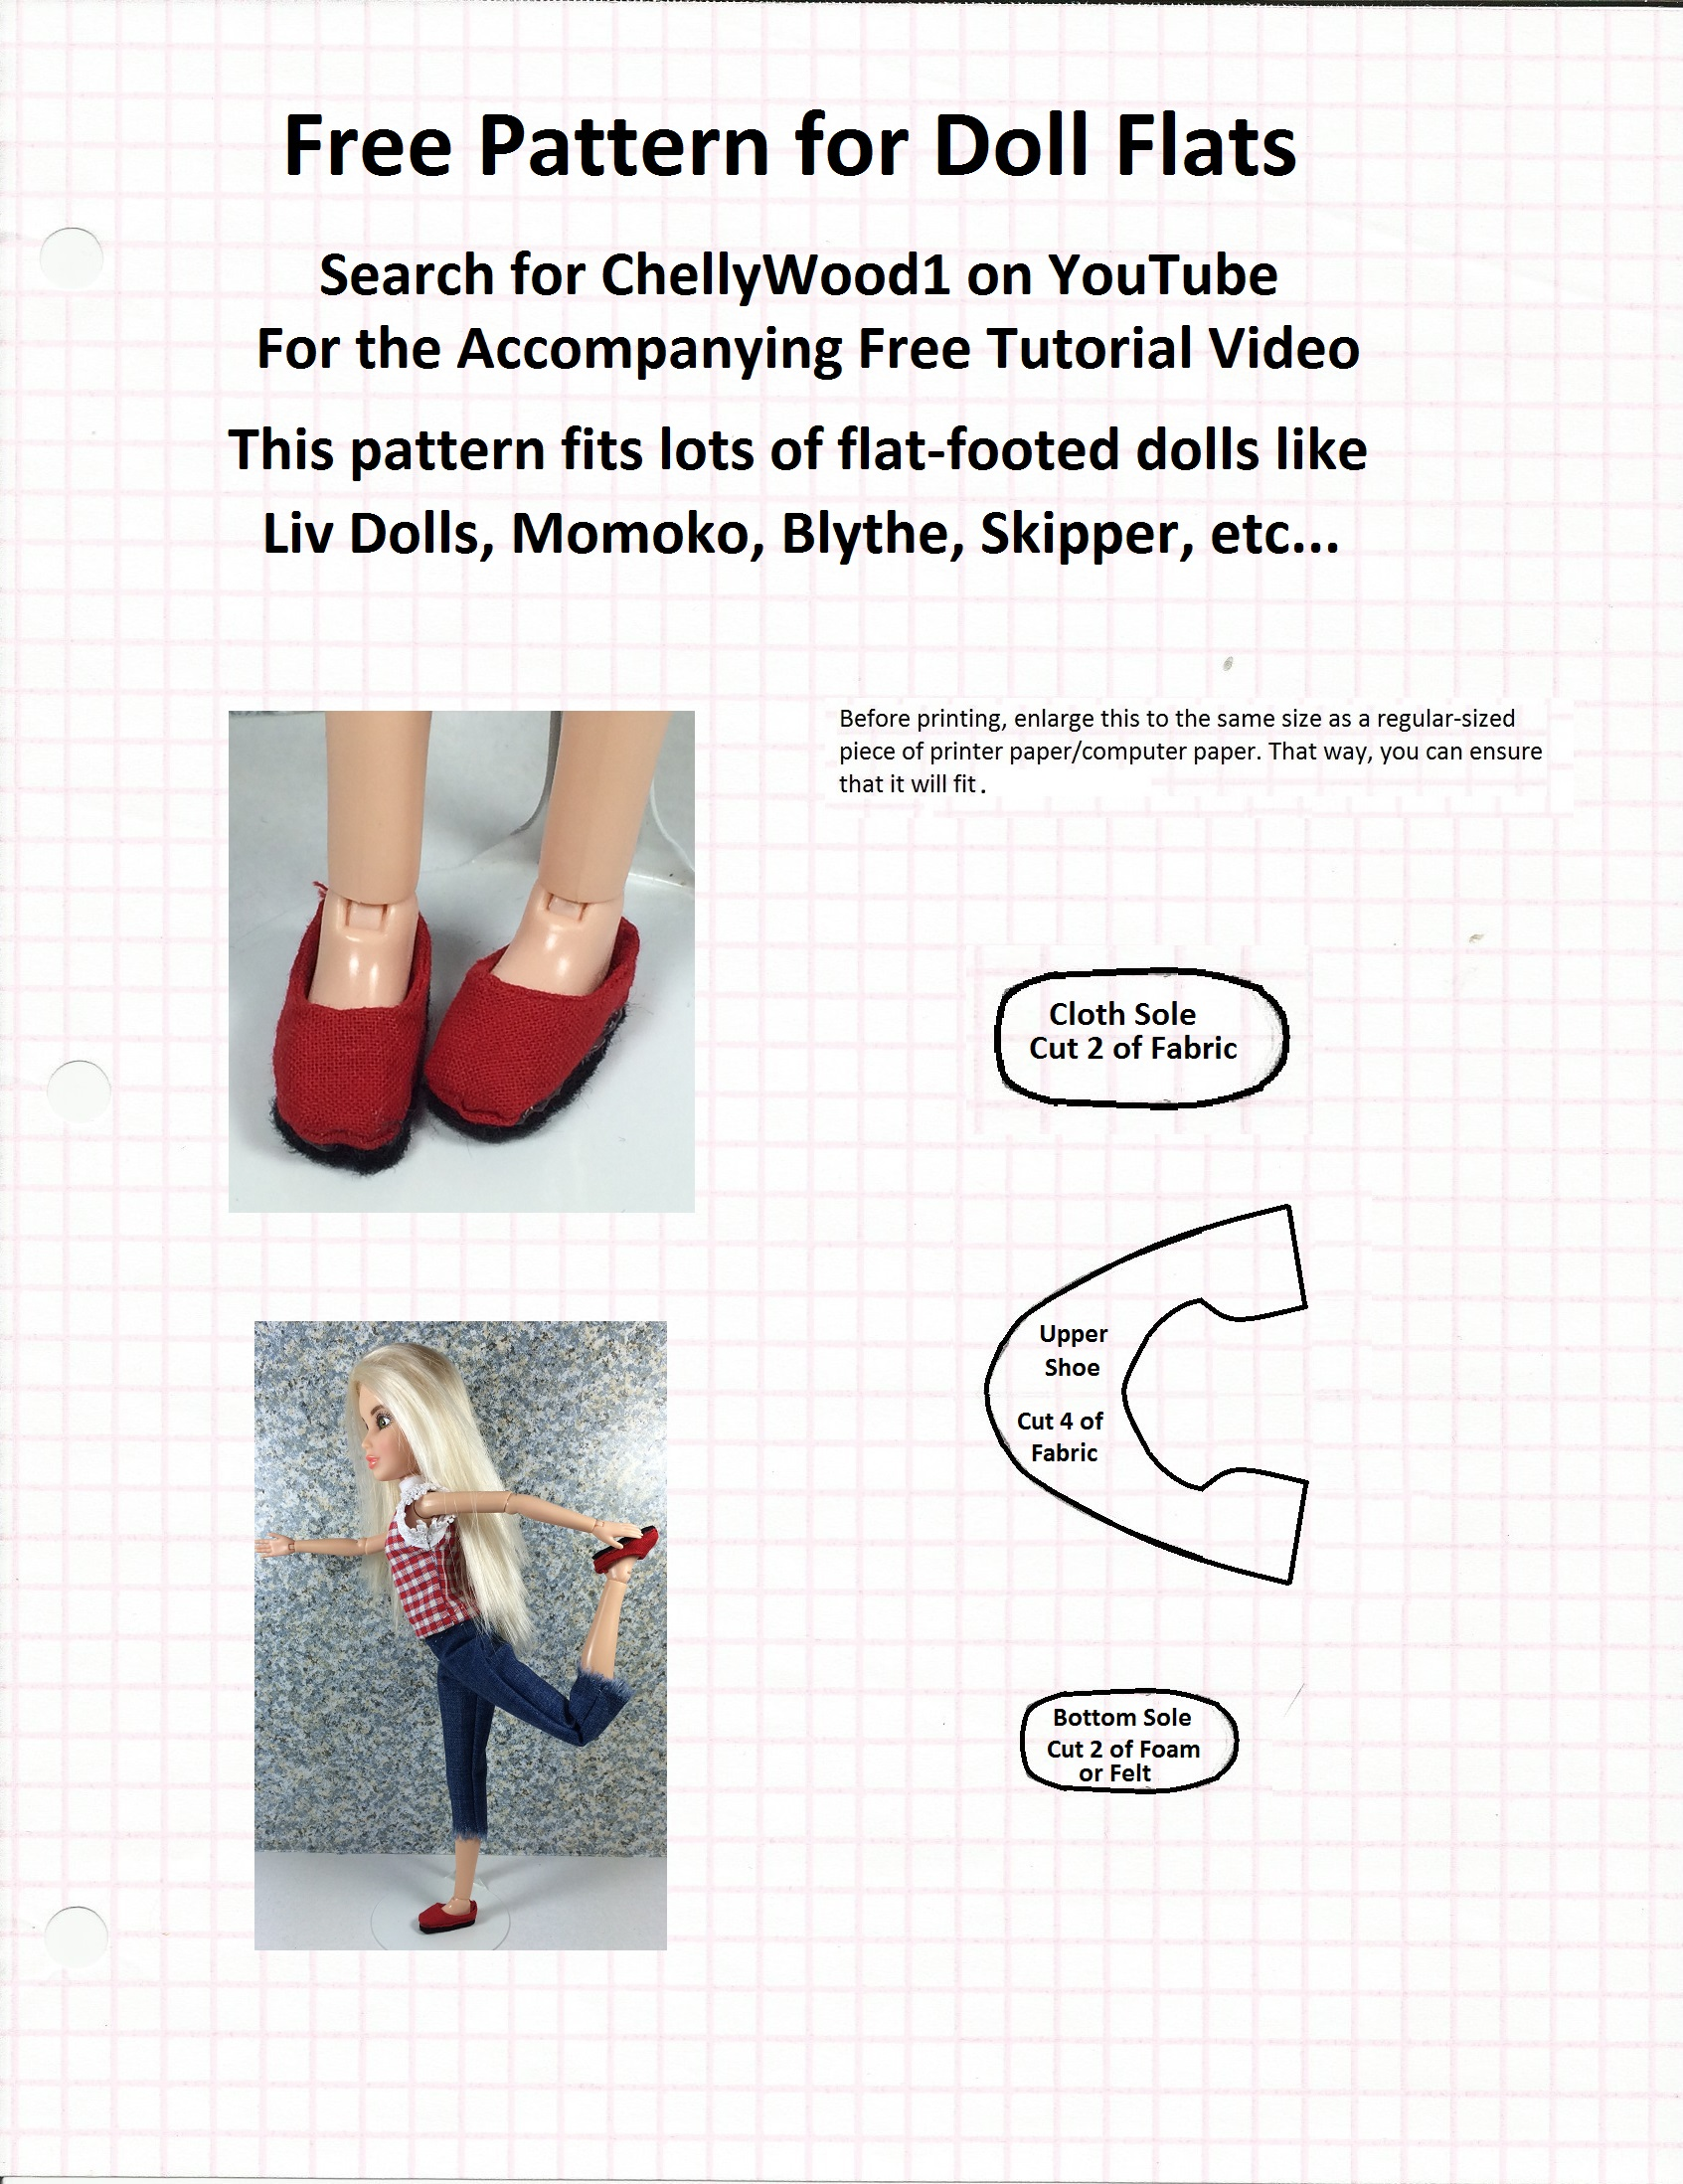 Free sewing pattern for dolls shoes chellywood chelly wood free printable pattern for making doll shoes jeuxipadfo Gallery